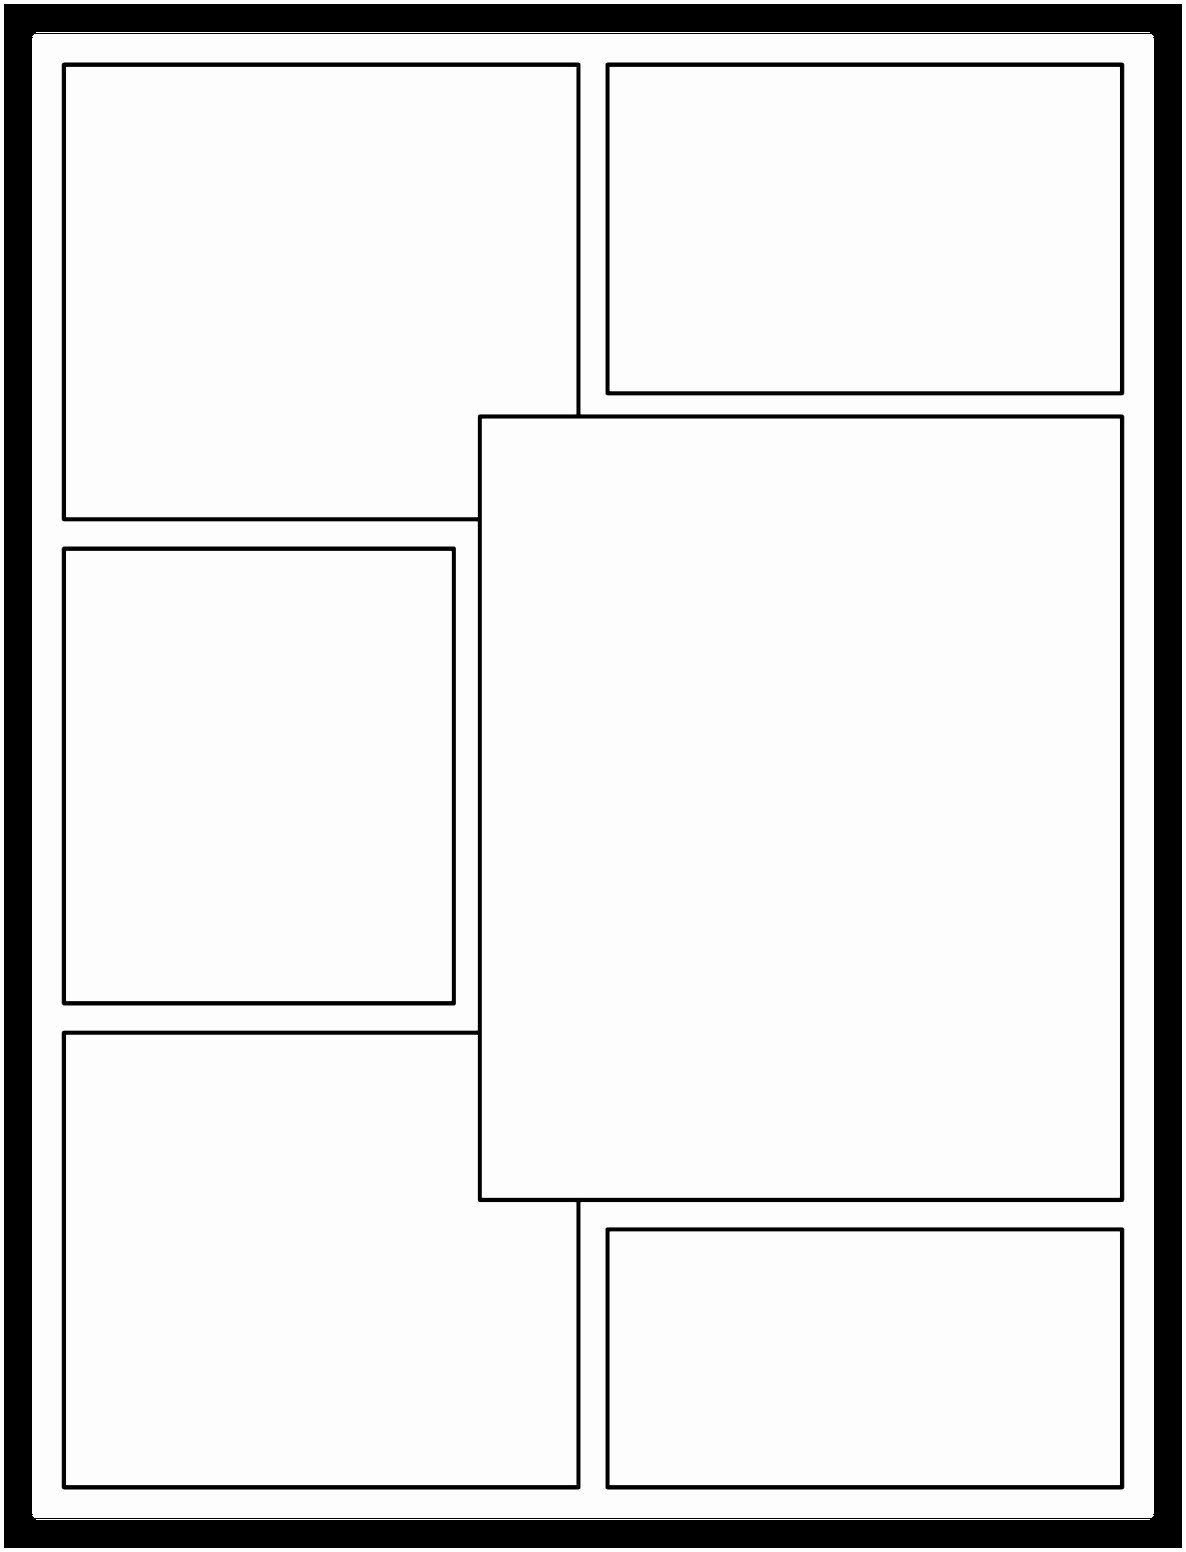 Comic Strip Template Word Unique 9 Printable Blank Ic Strip Template for Kids Iowui